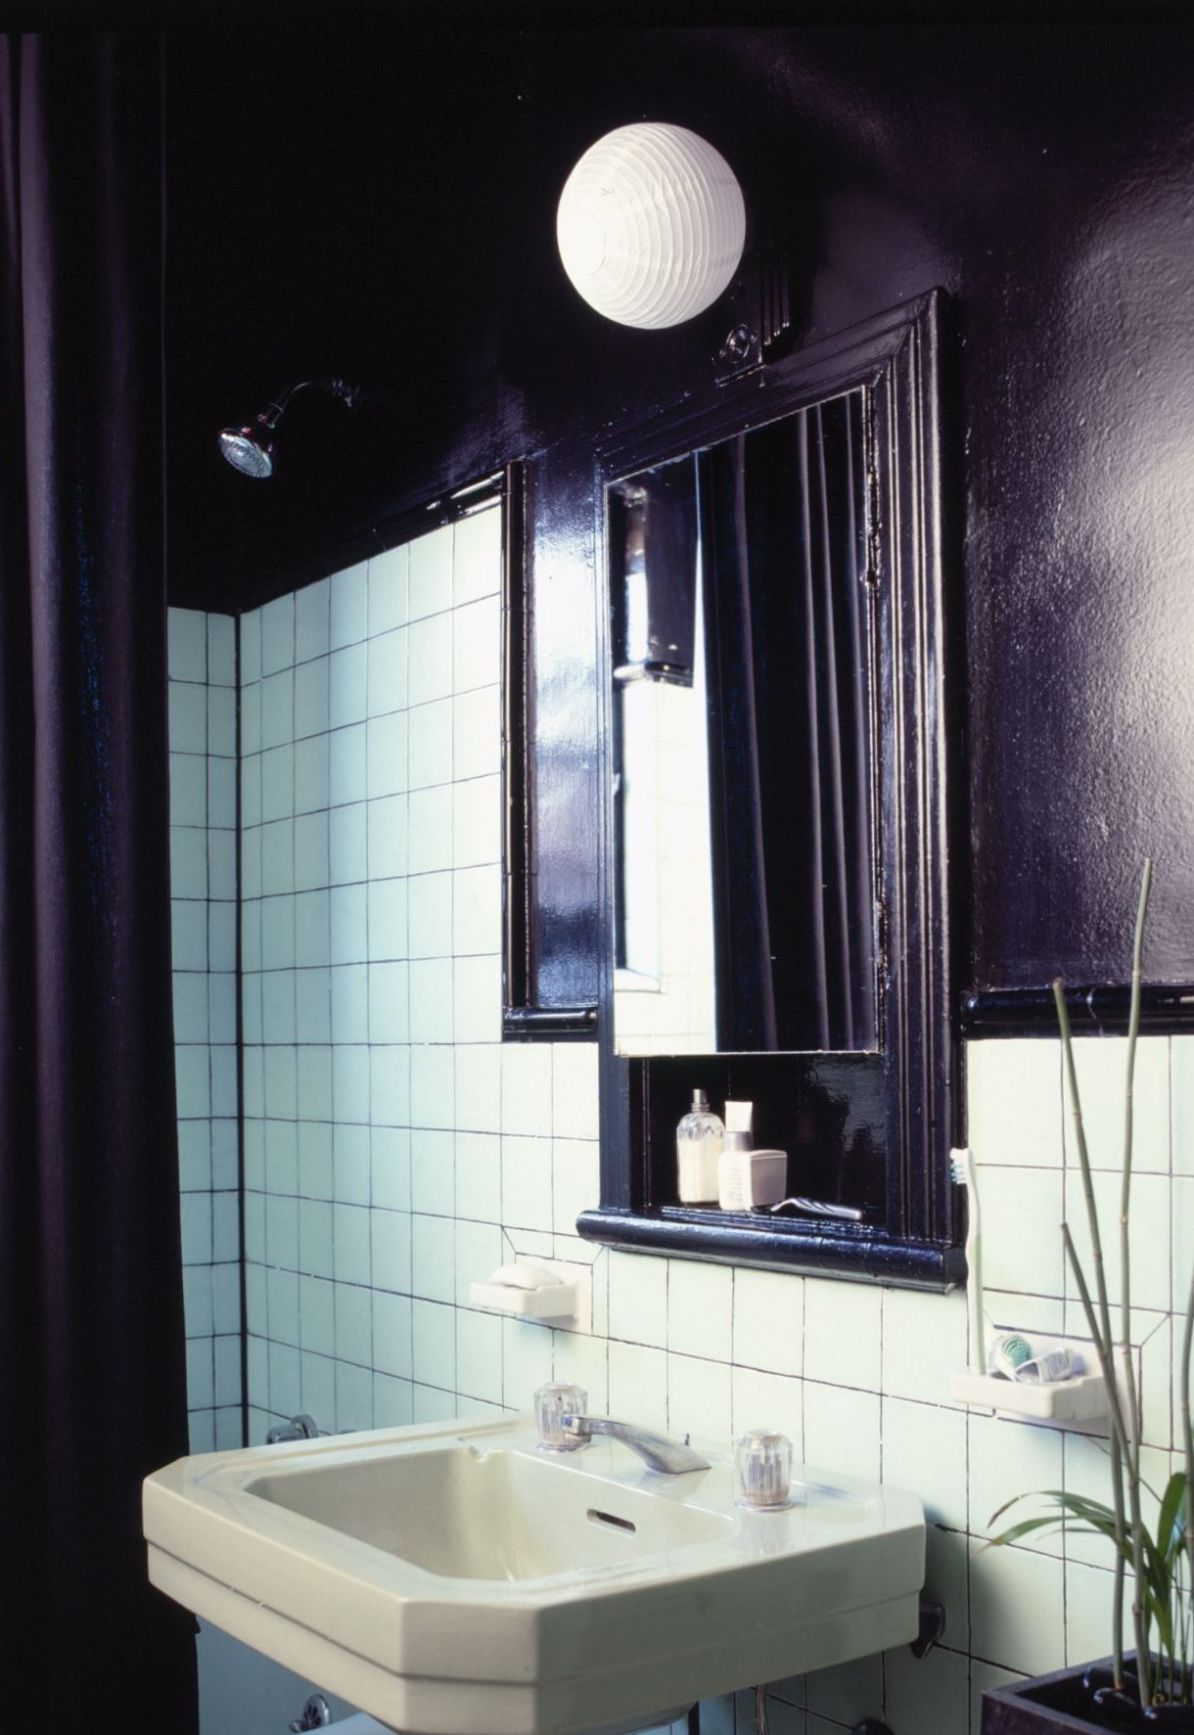 Add some black to update 1950s bathroom